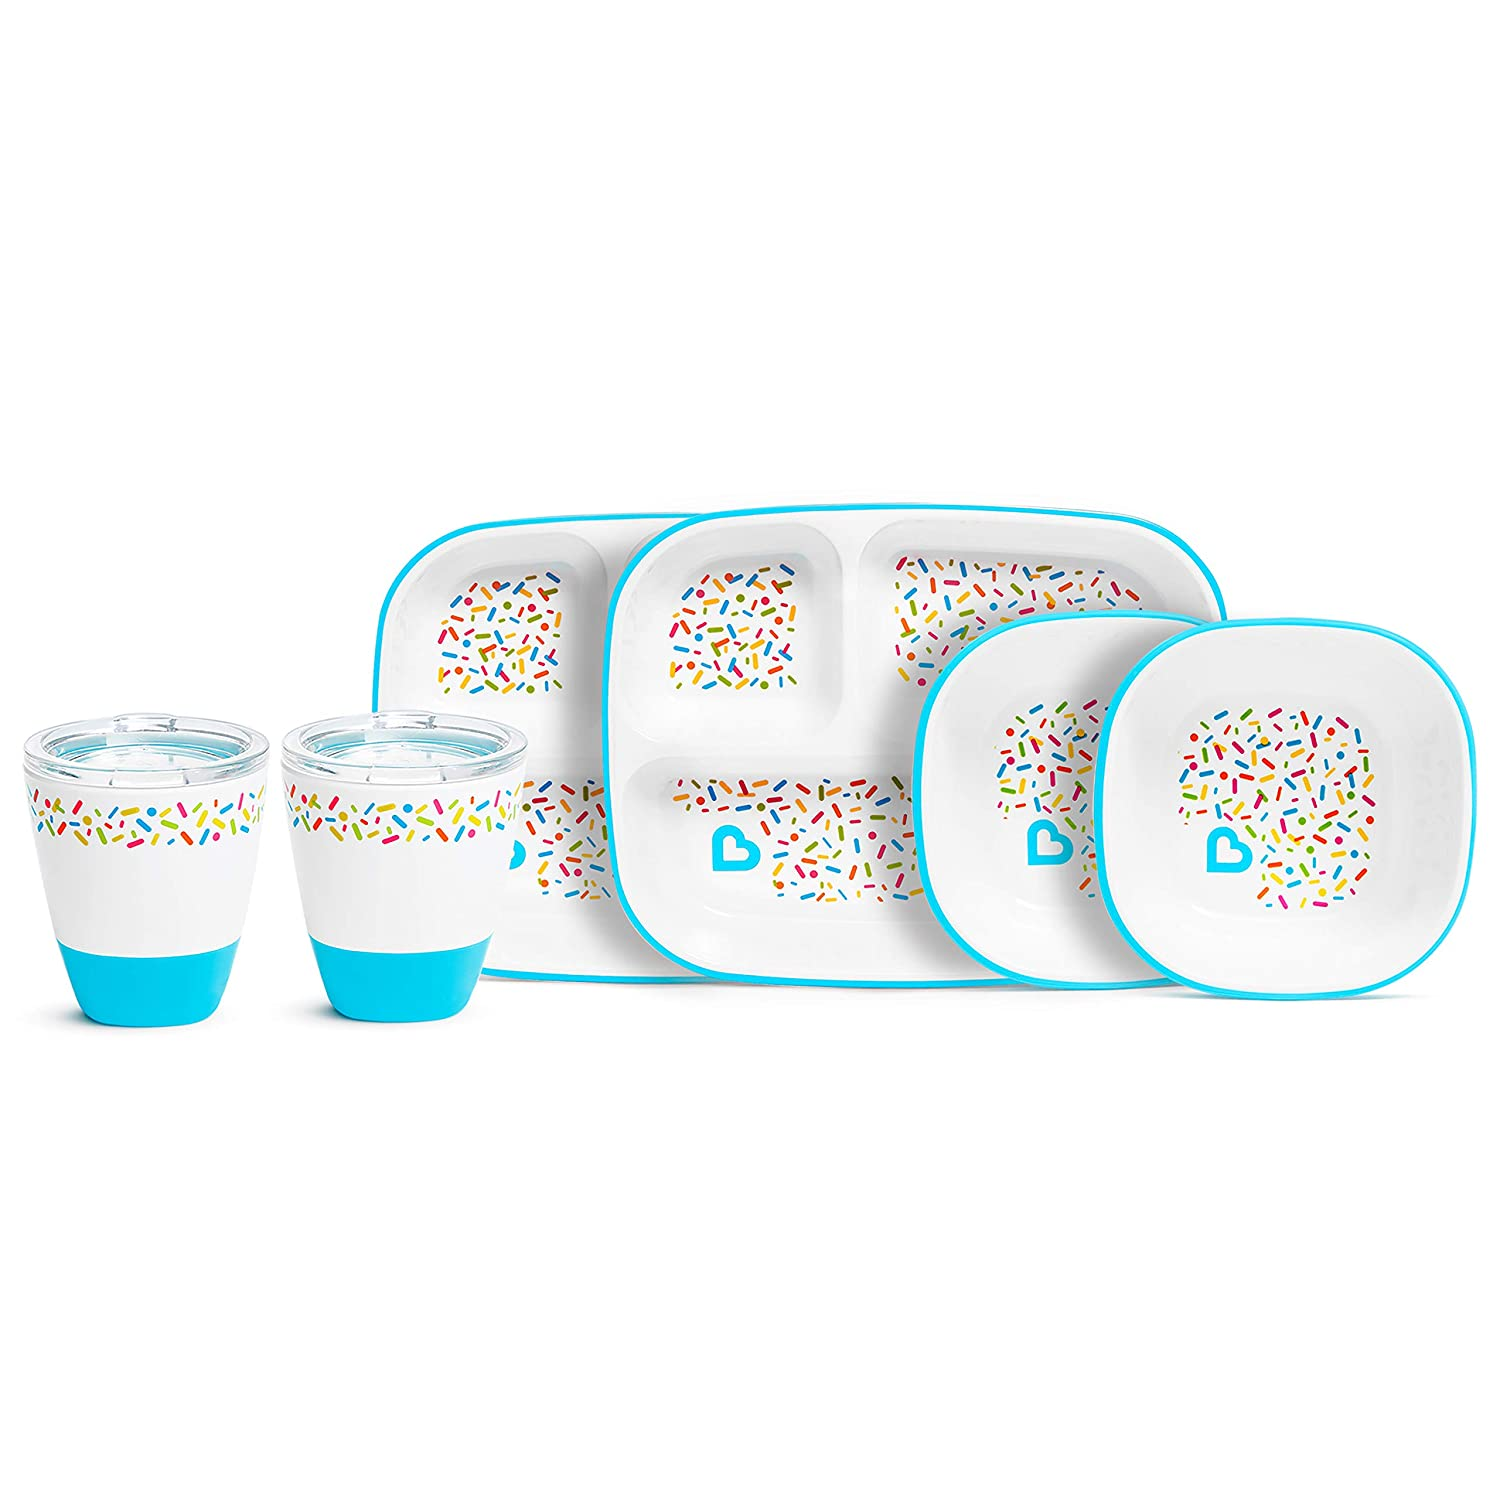 Munchkin Splash 6 Popular popular Piece Toddler Bowl Dining Cup Plate Super special price Divided